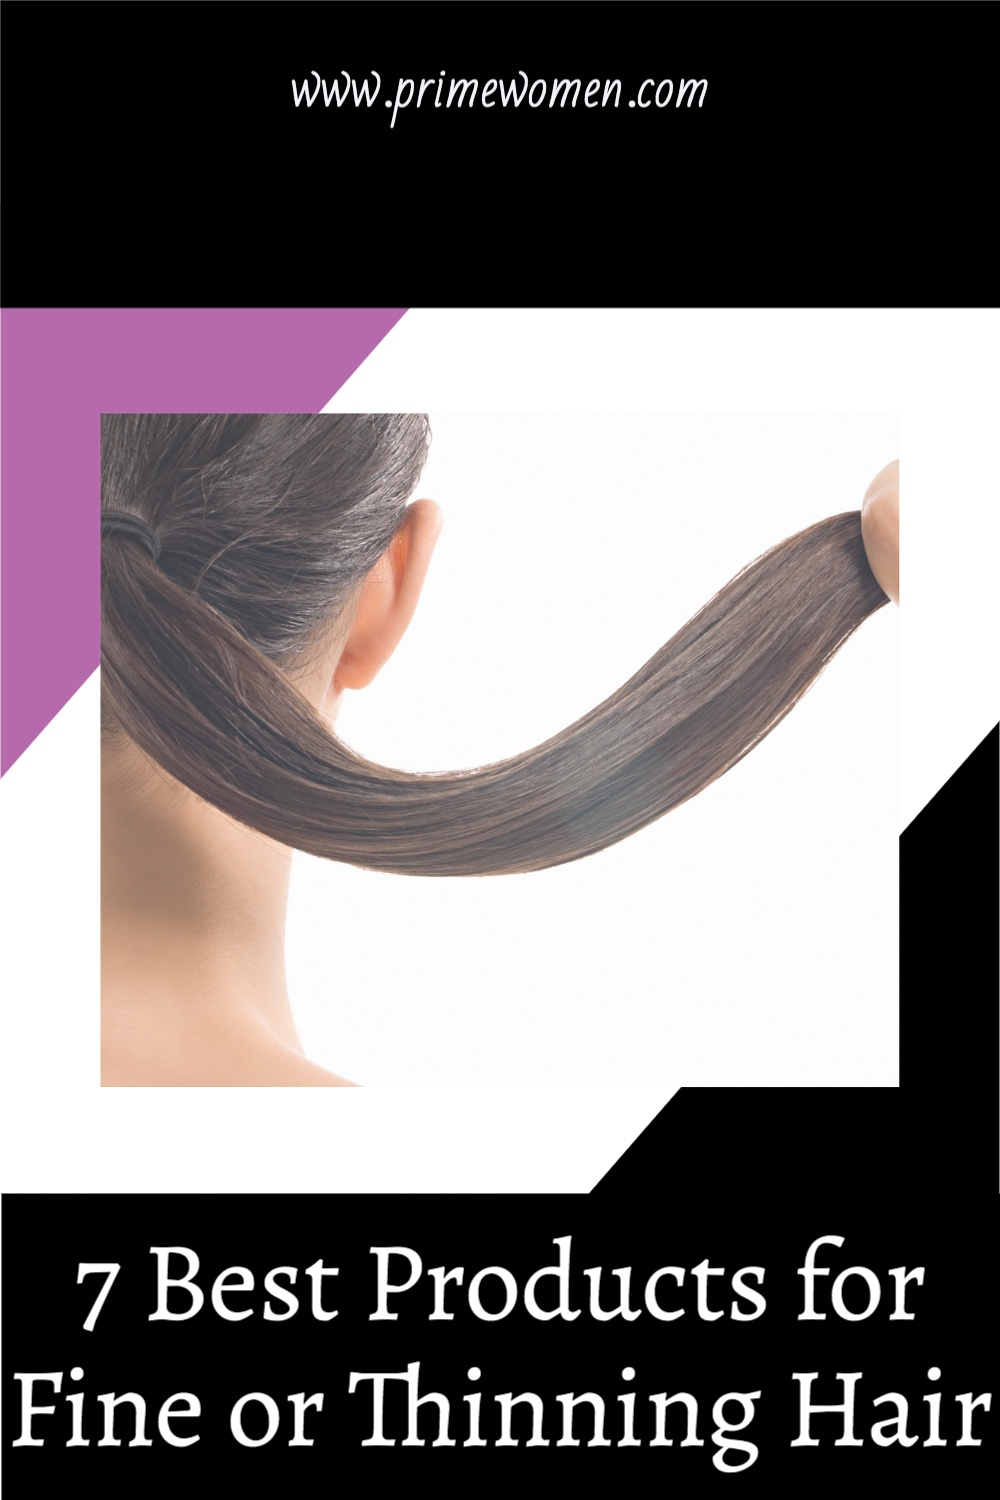 7-Best-Products-for-Fine-or-Thinning-Hair